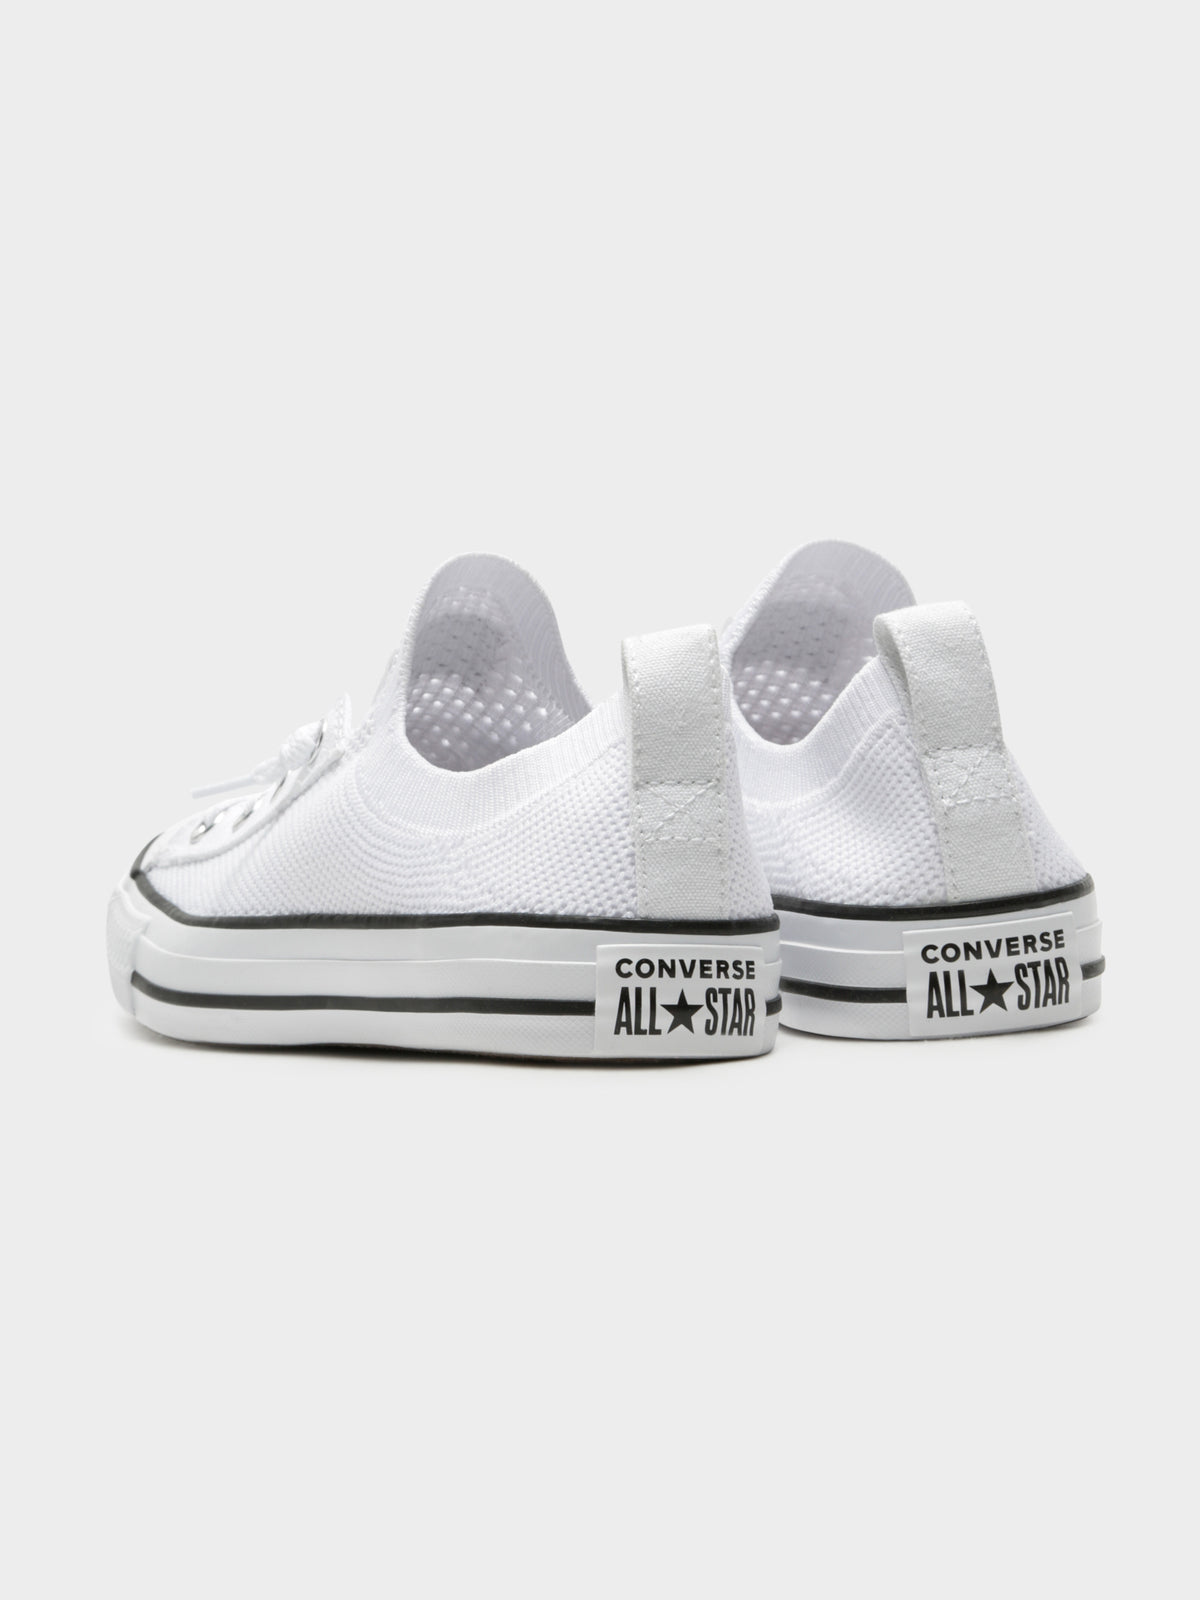 Chuck Taylor All Star Shoreline Knit Slip-On Sneakers in White